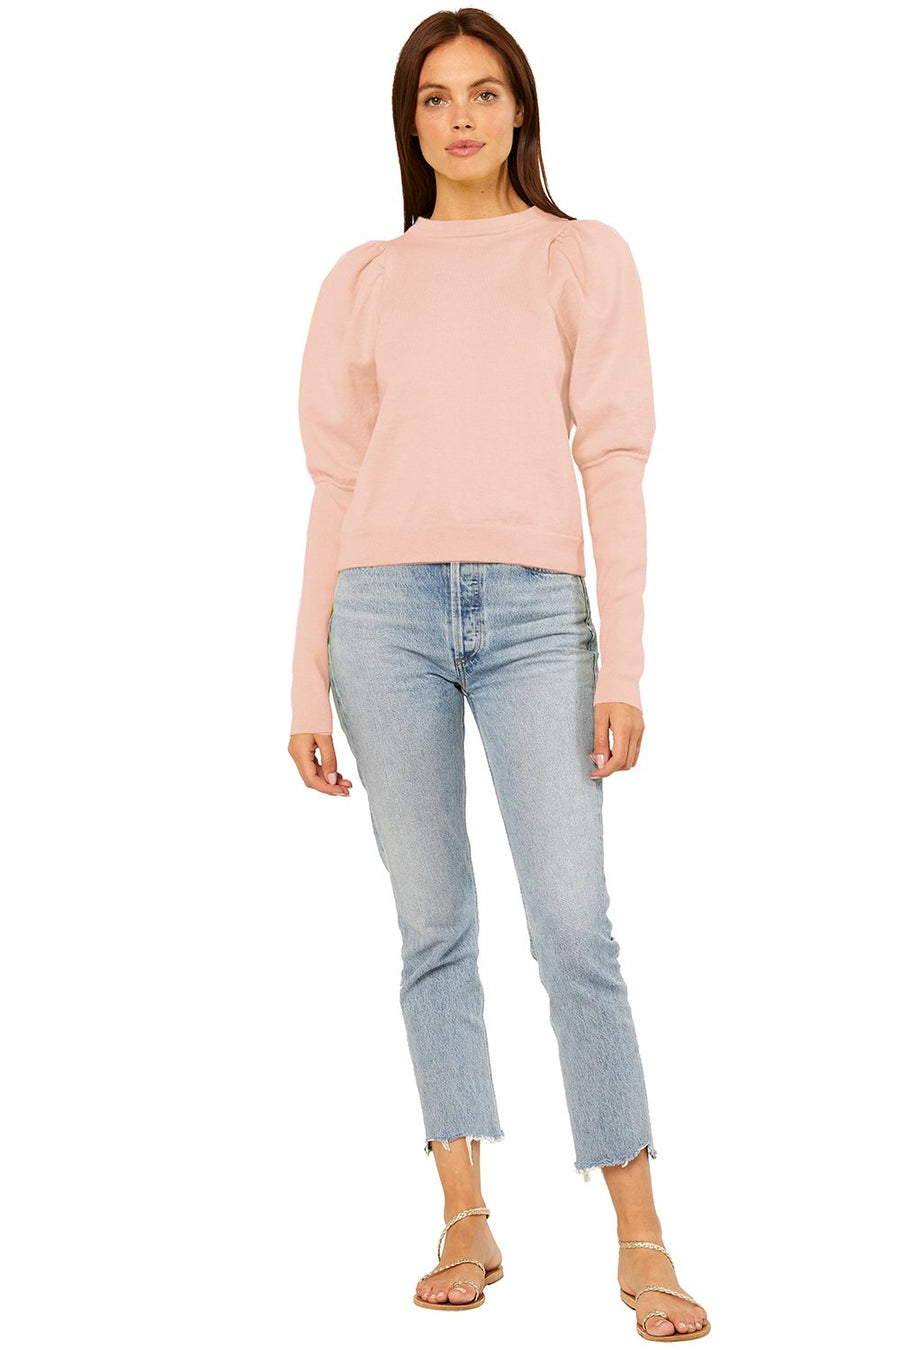 Misa Kali Sweater in Dusty Pink